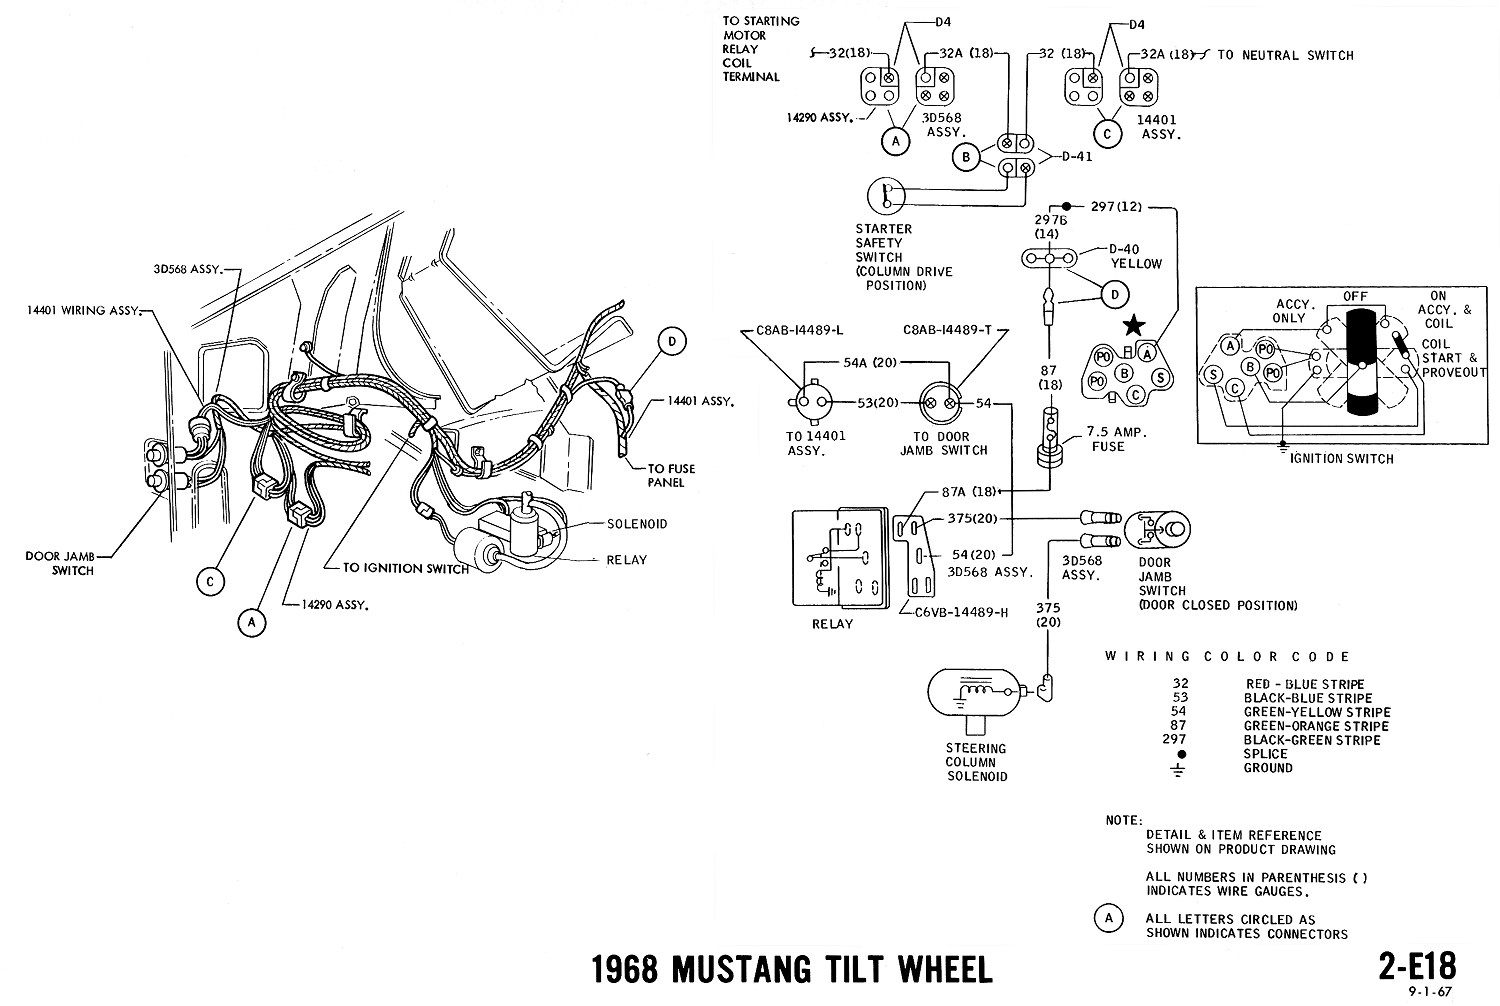 1968 mustang wiring diagrams evolving software. Black Bedroom Furniture Sets. Home Design Ideas